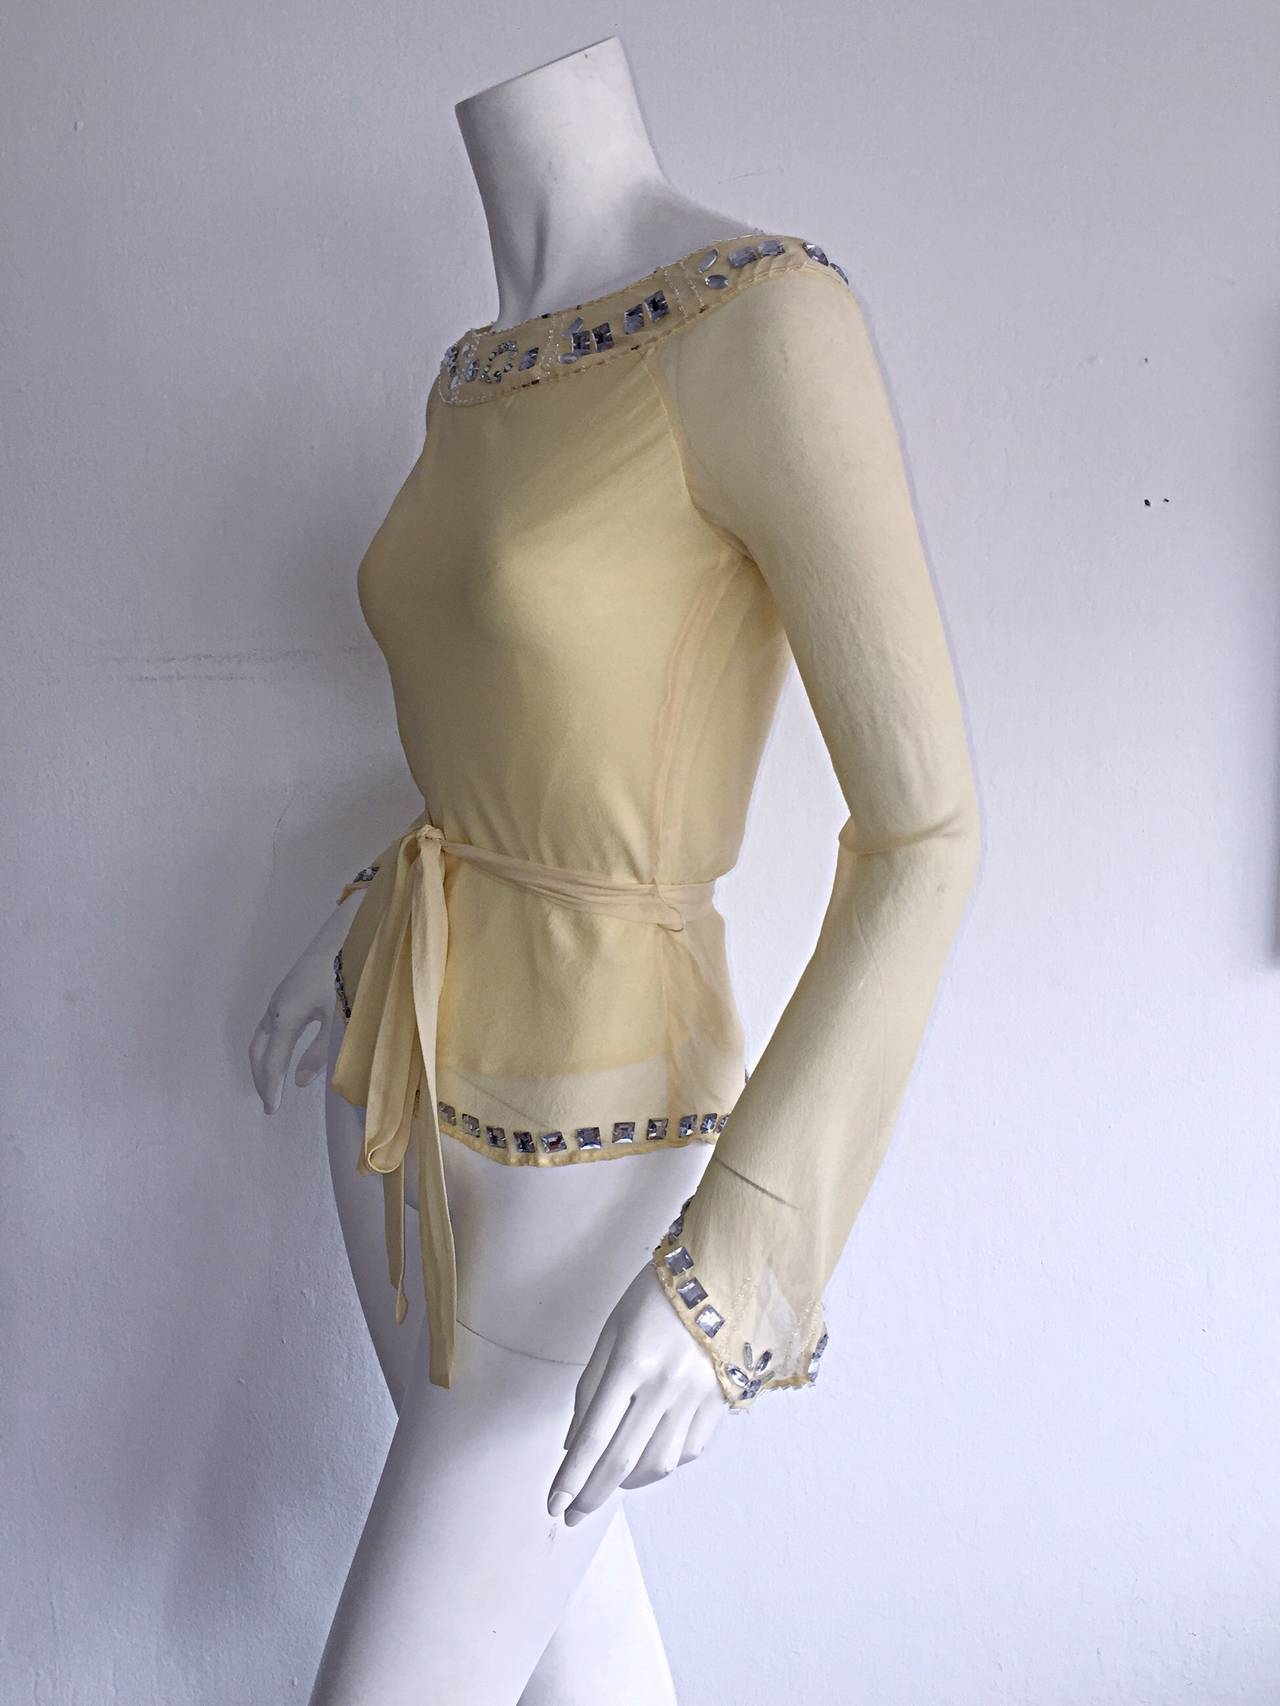 1990s Vintage Chloe by Karl Lagerfeld Yellow Chiffon Angel Blouse w/ Rhinestones In Excellent Condition For Sale In Chicago, IL